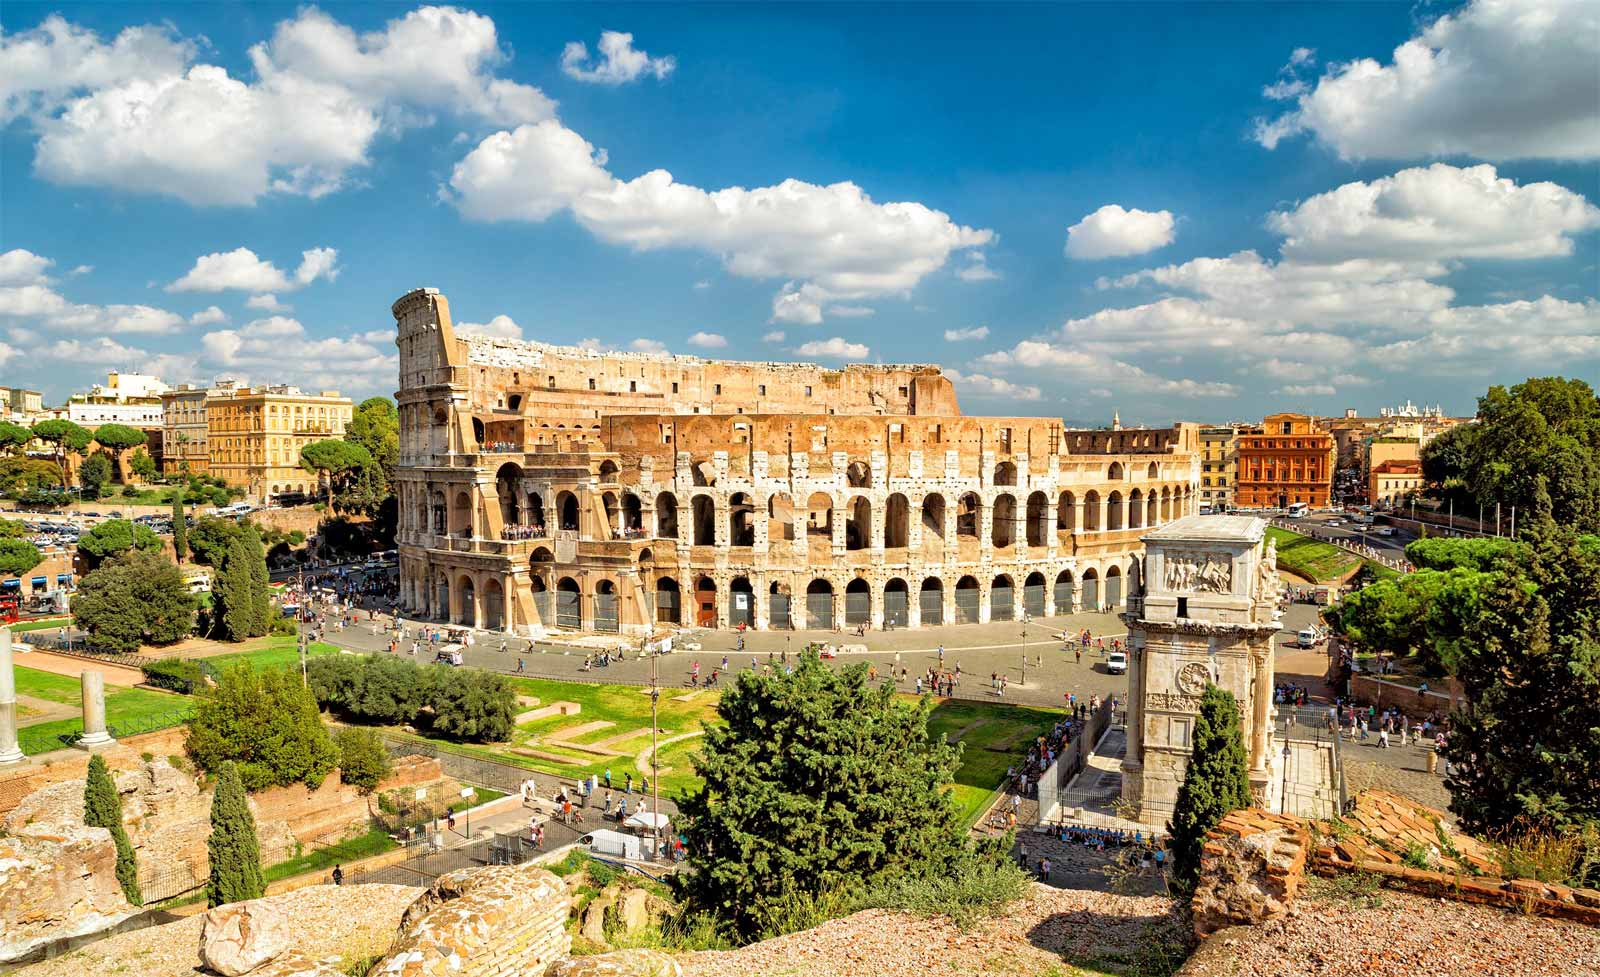 Colosseum in 1 hour